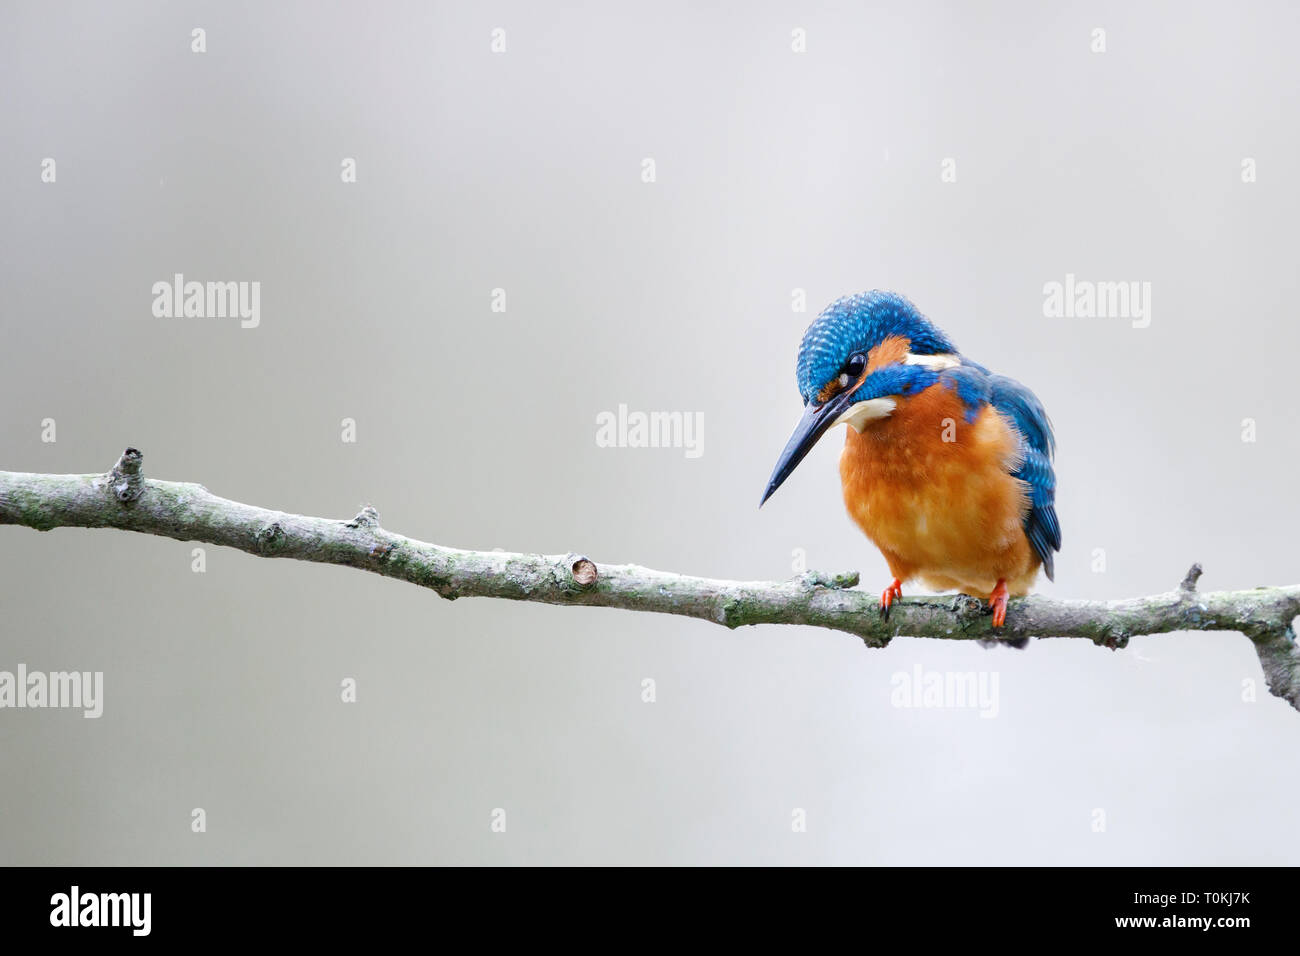 Common kingfisher, Alcedo atthis, perched on the branch Stock Photo